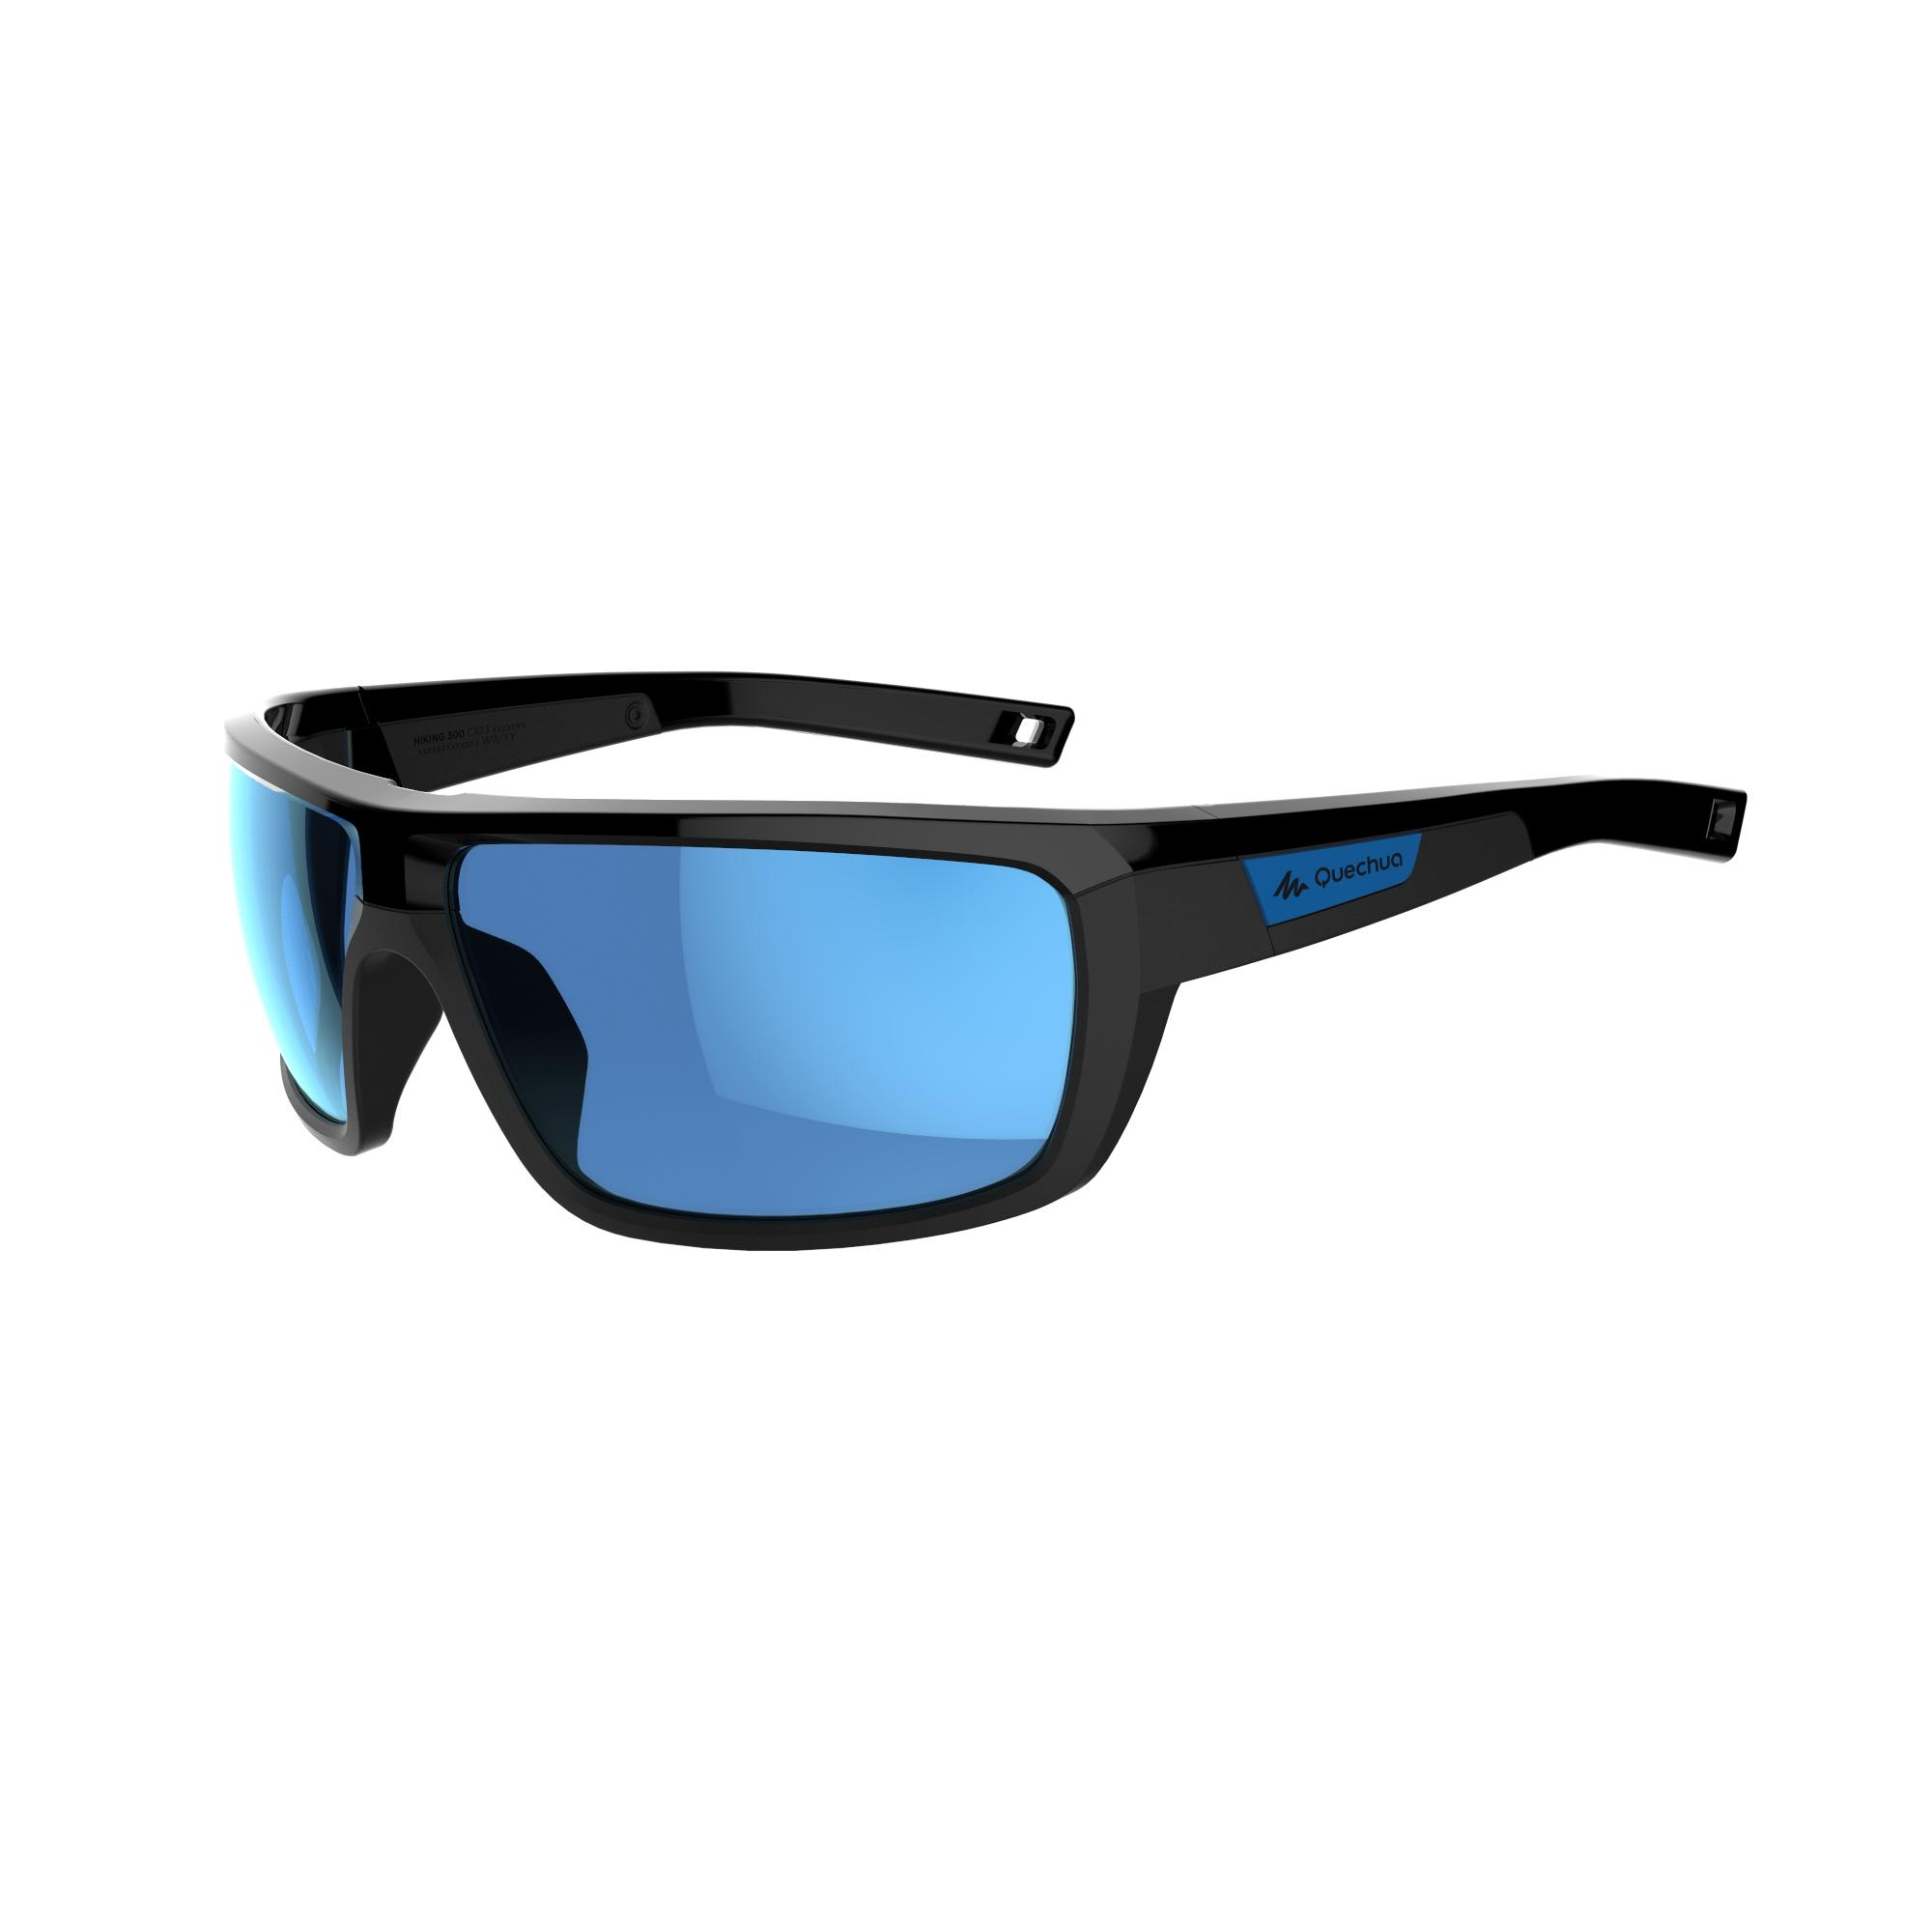 Hiking 300 Adult Category 3 Hiking Glasses - Black & Blue